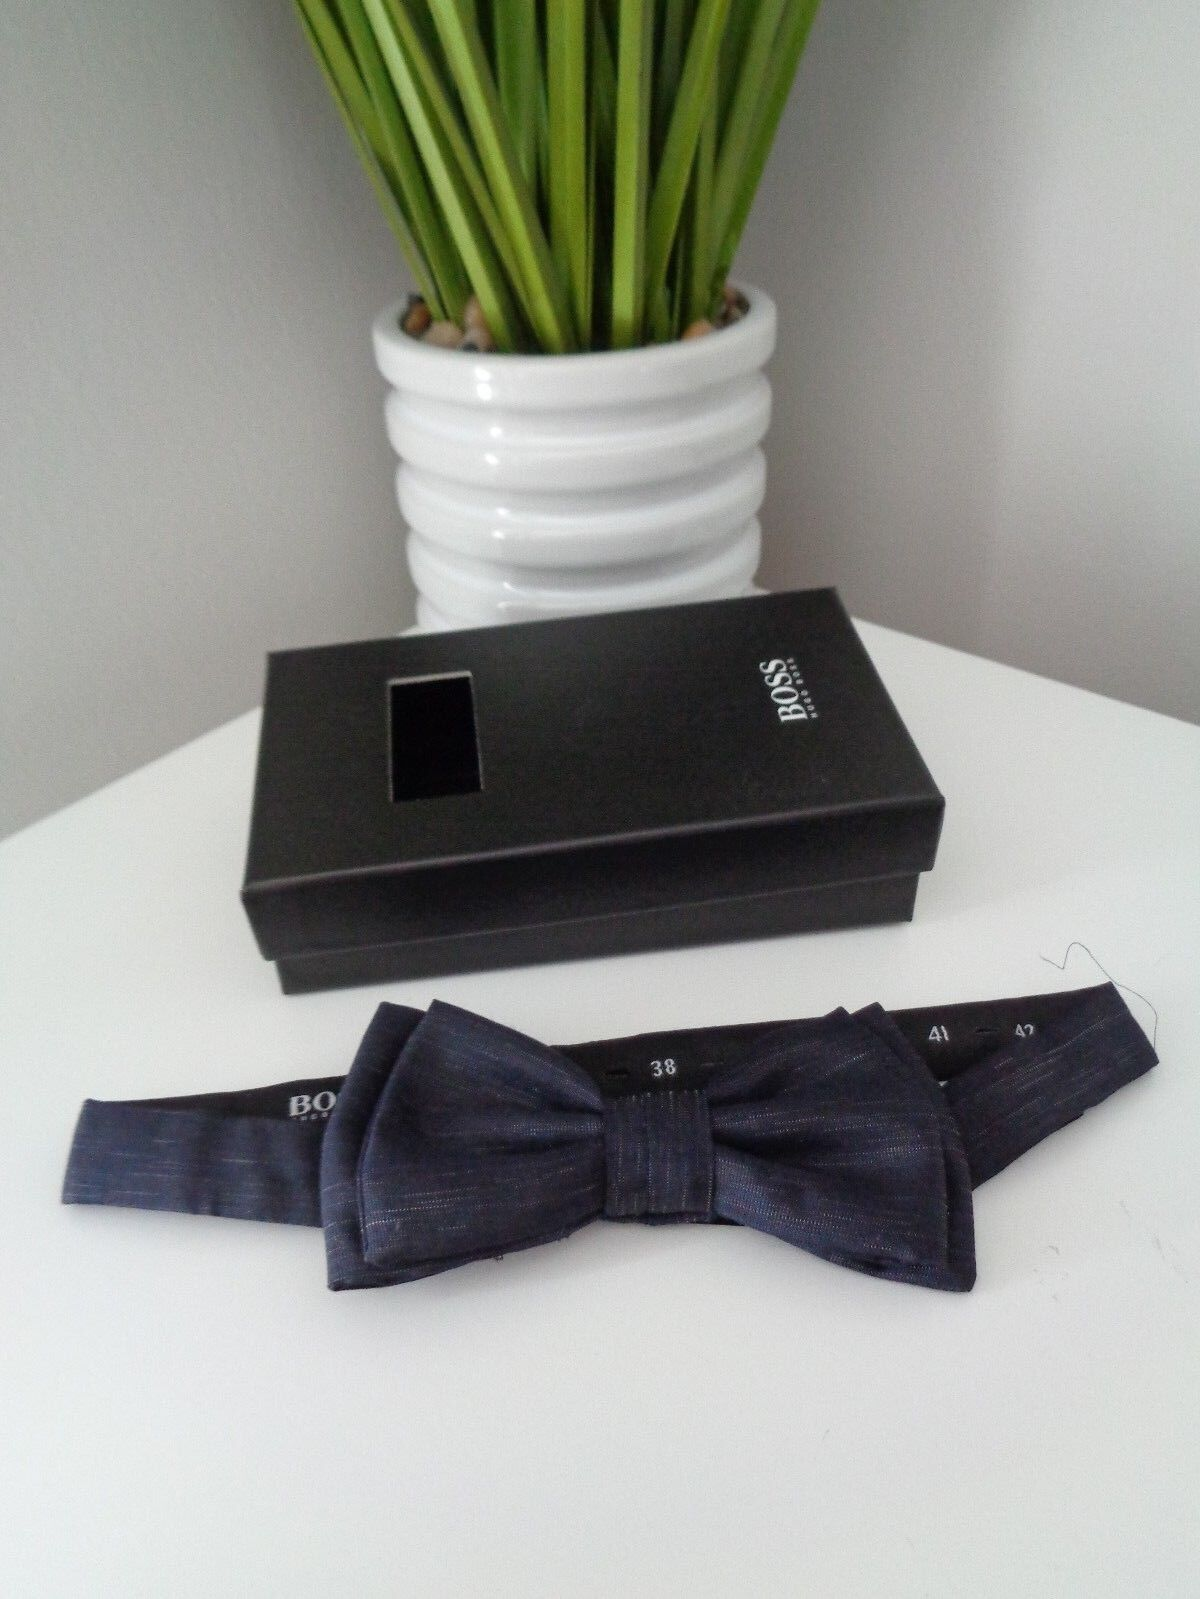 bb8cb79247a4 Hugo Boss Italian Silk & Wool Dark Blue Bow Tie. Gift Idea Prom Save ...